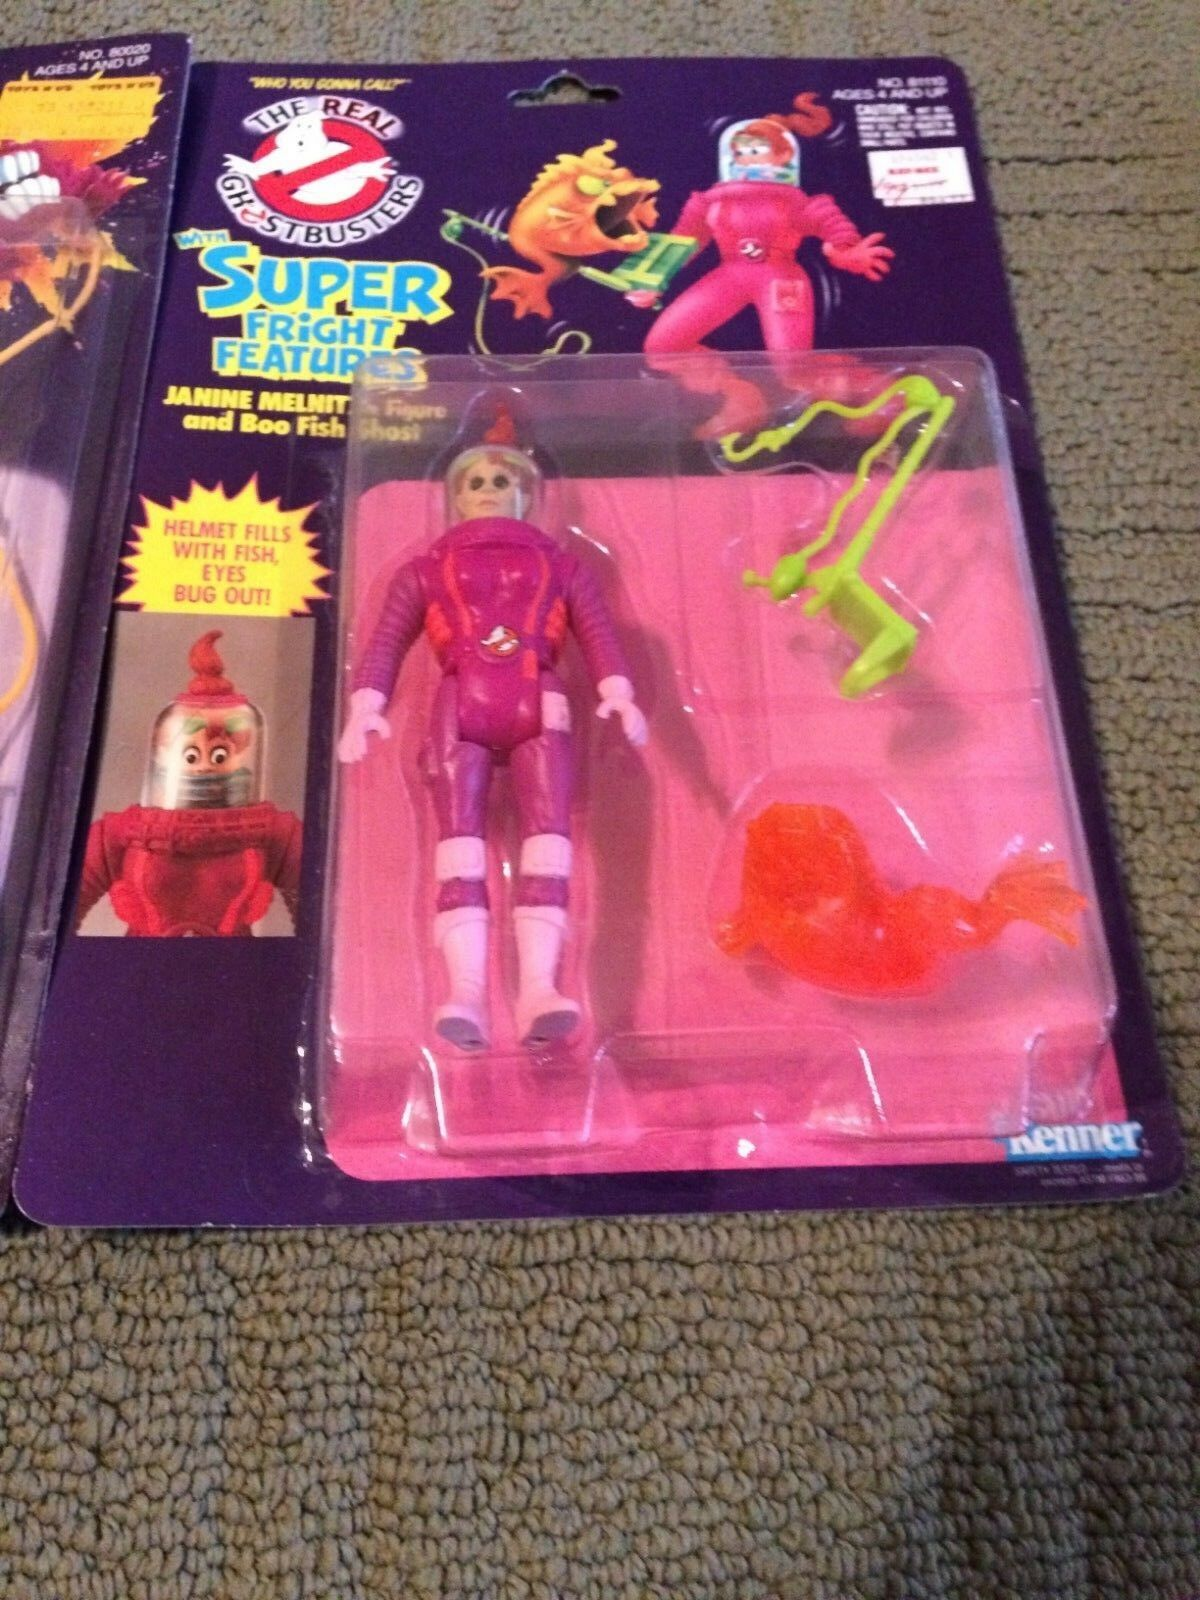 1989 KENNER DEN REALA GHOSTBRUKAREN SUPER FEATURER JANINE MELNITZ